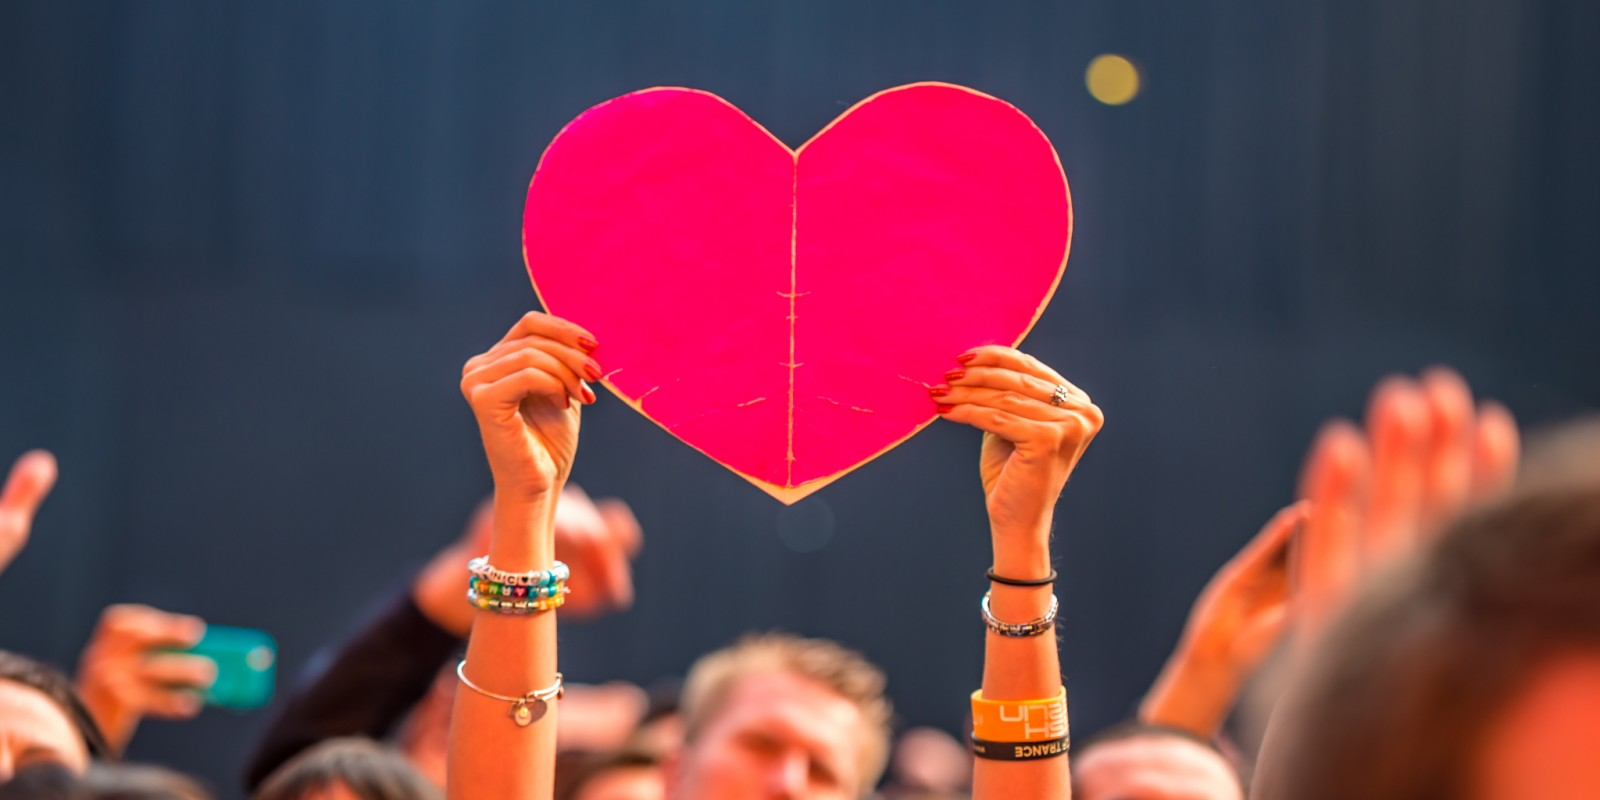 A heart sign at AMF 2016